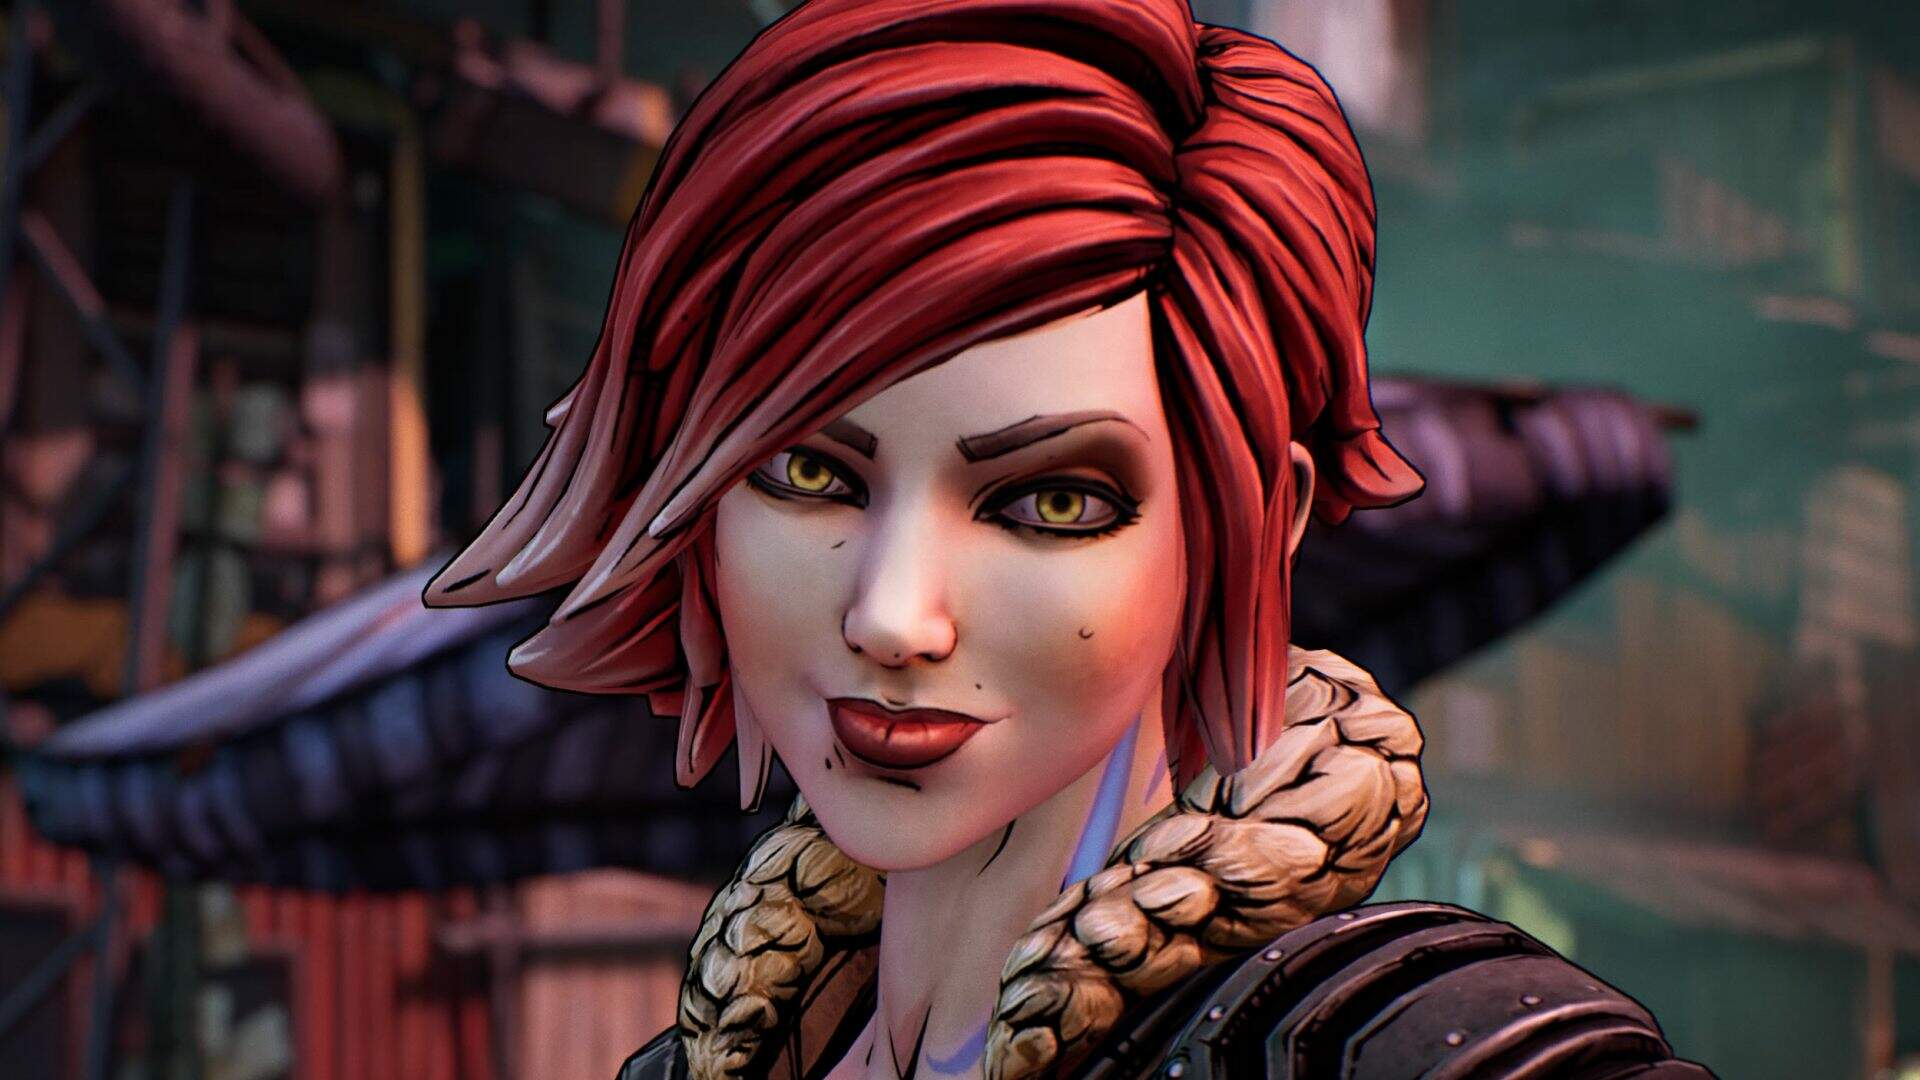 Borderlands 2 New DLC - How to Access the Borderlands 2 Commander Lillith and the Fight for Sanctuary DLC